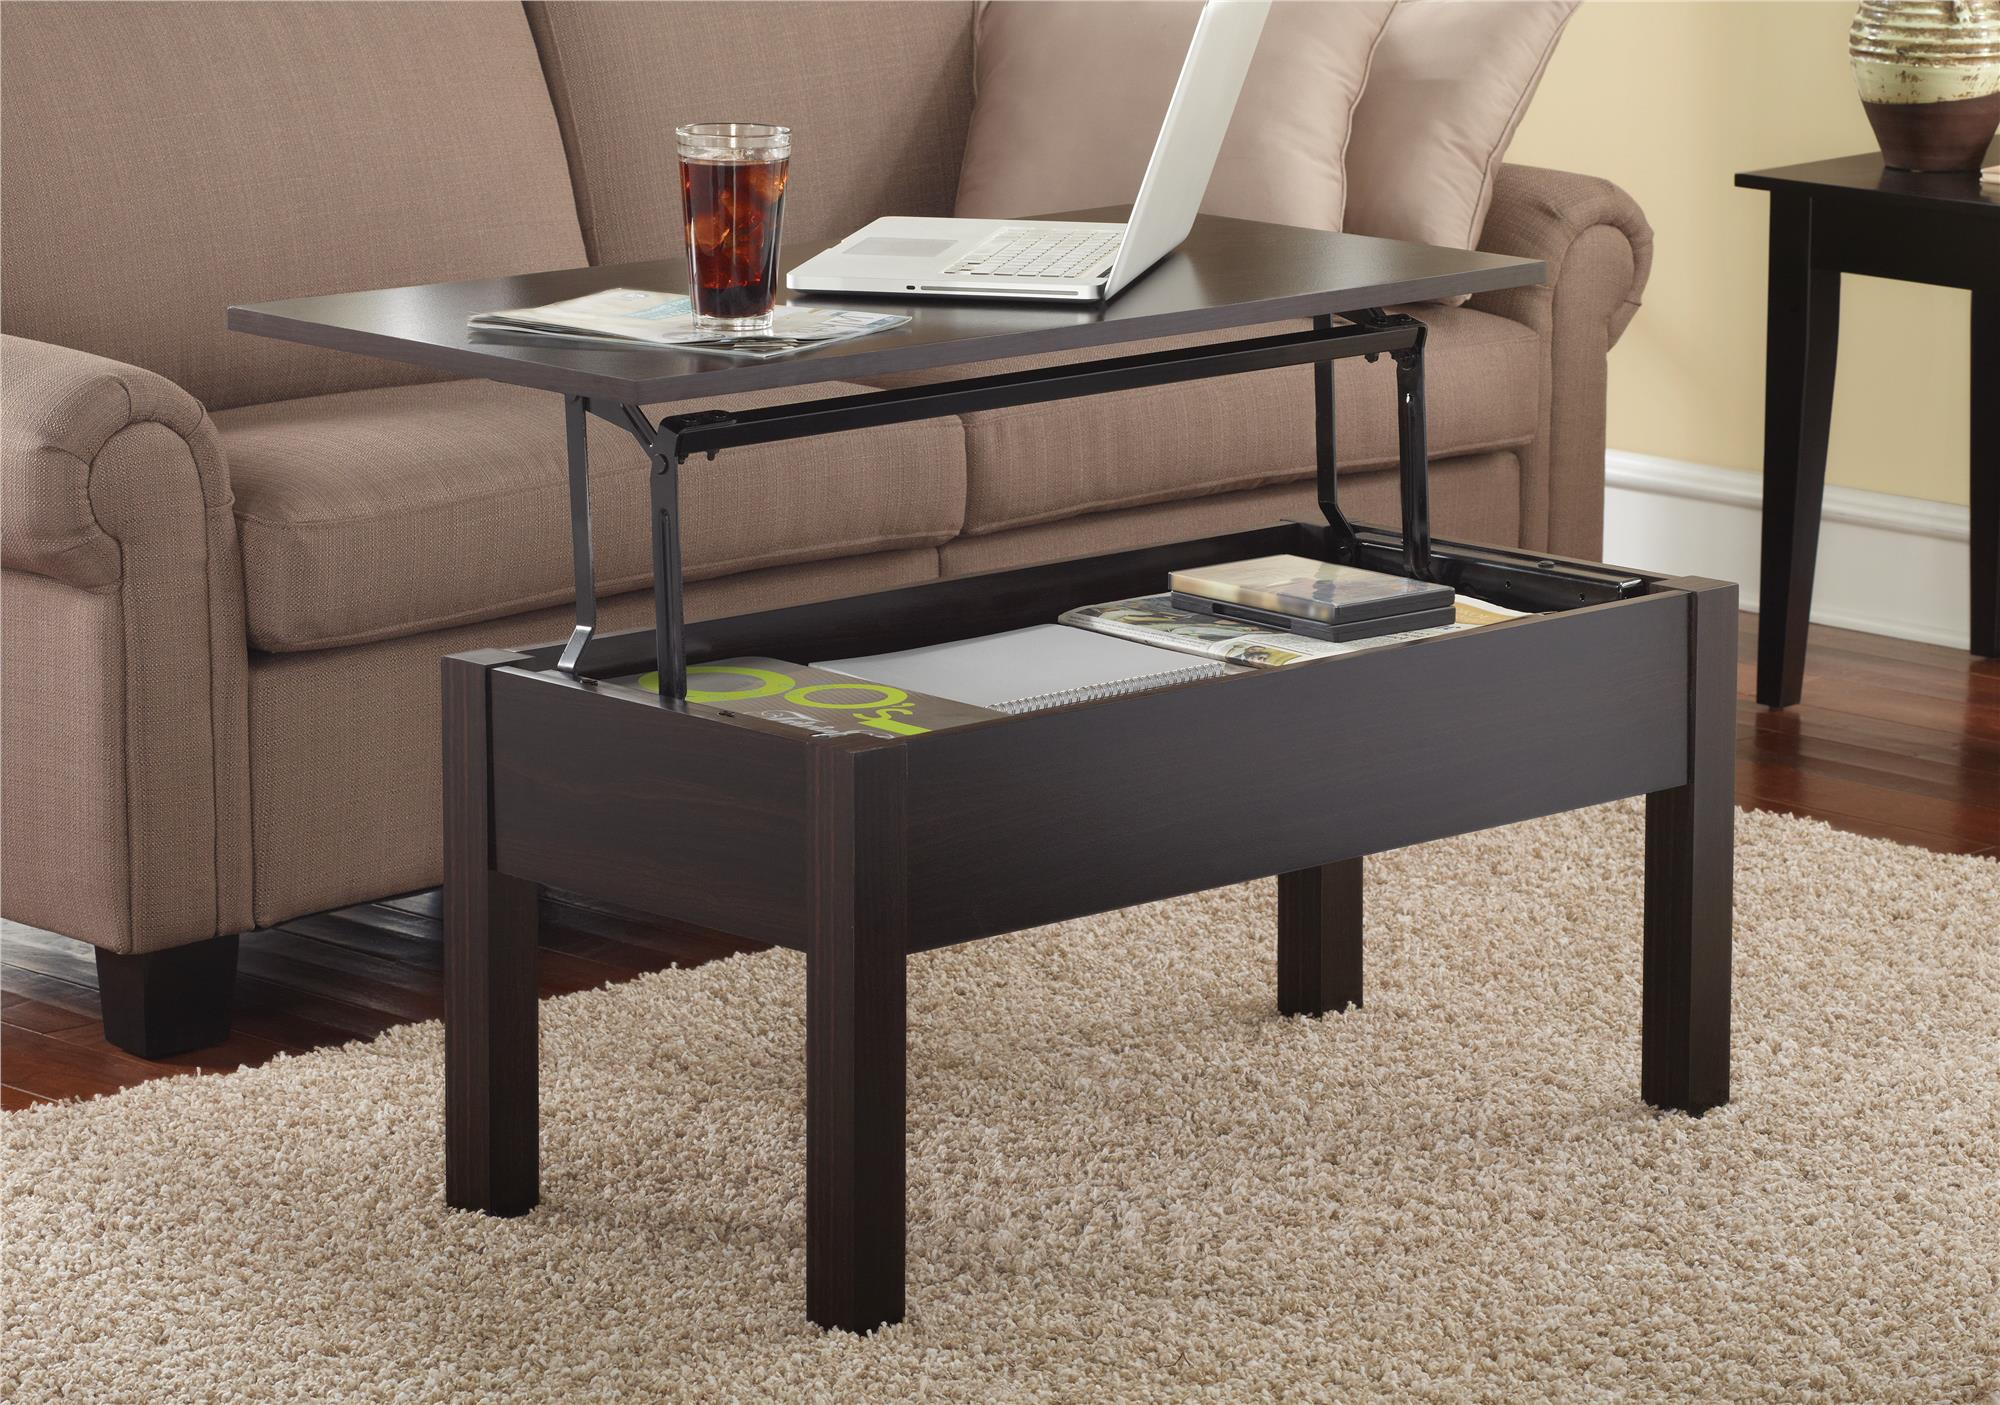 Mainstays Lift-Top Coffee Table, Multiple Colors by Ameriwood